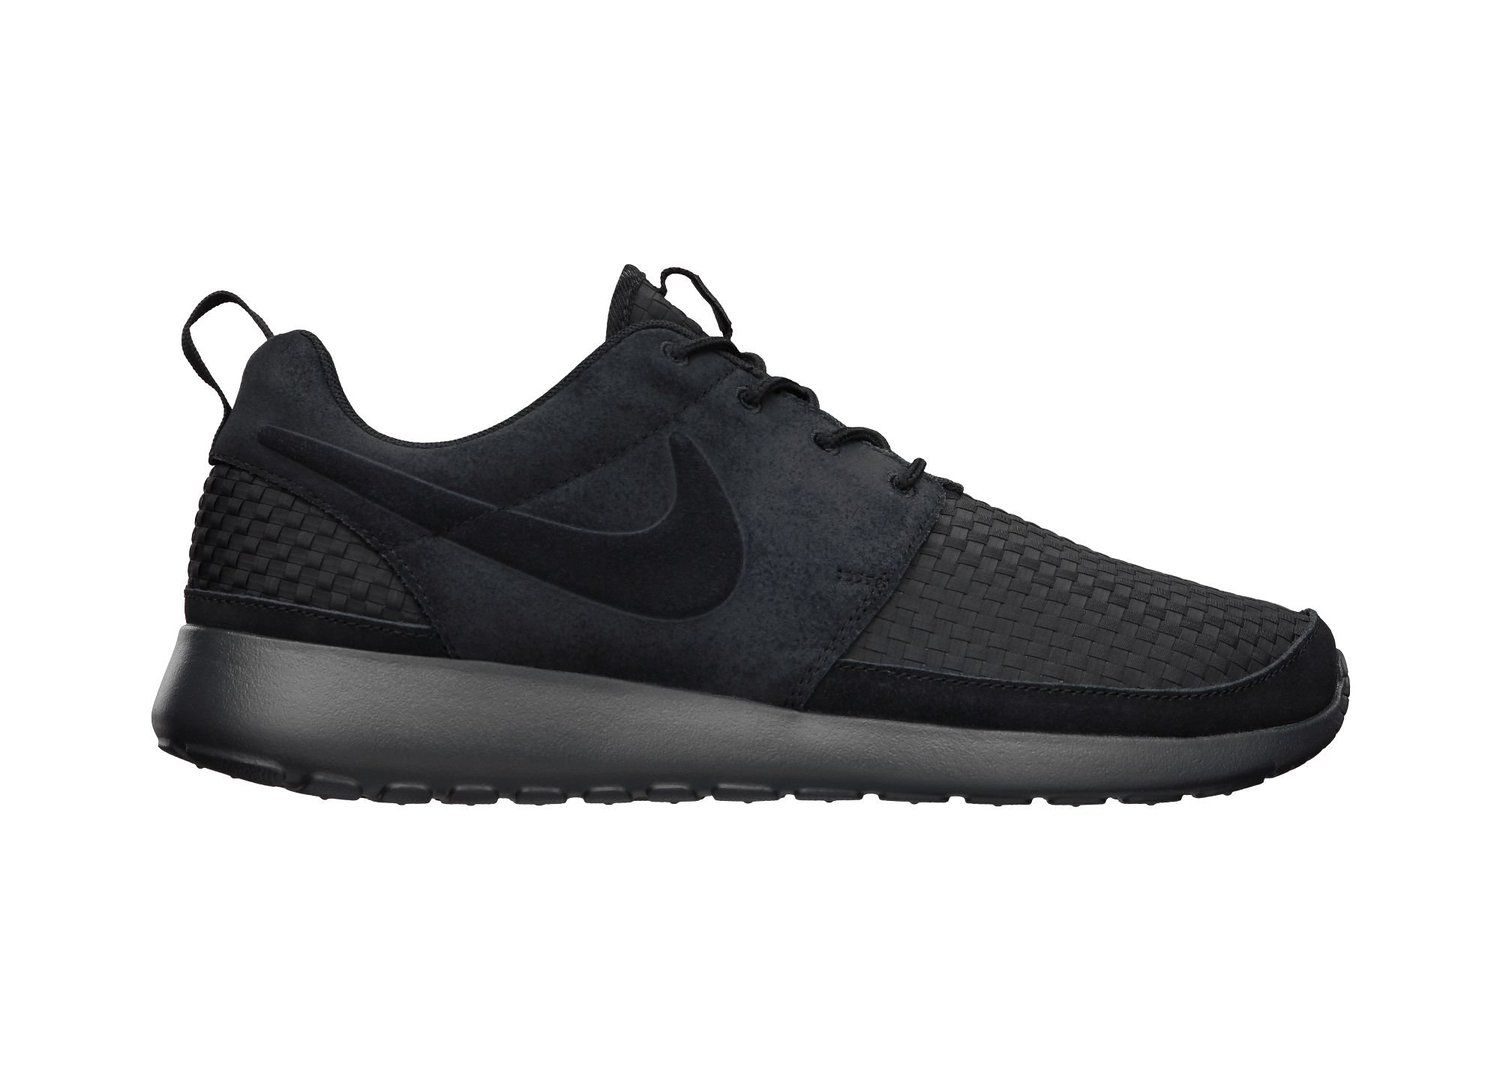 Real Nike Roshe Run Hyperfuse Gold Trophy Mens Shoes Now